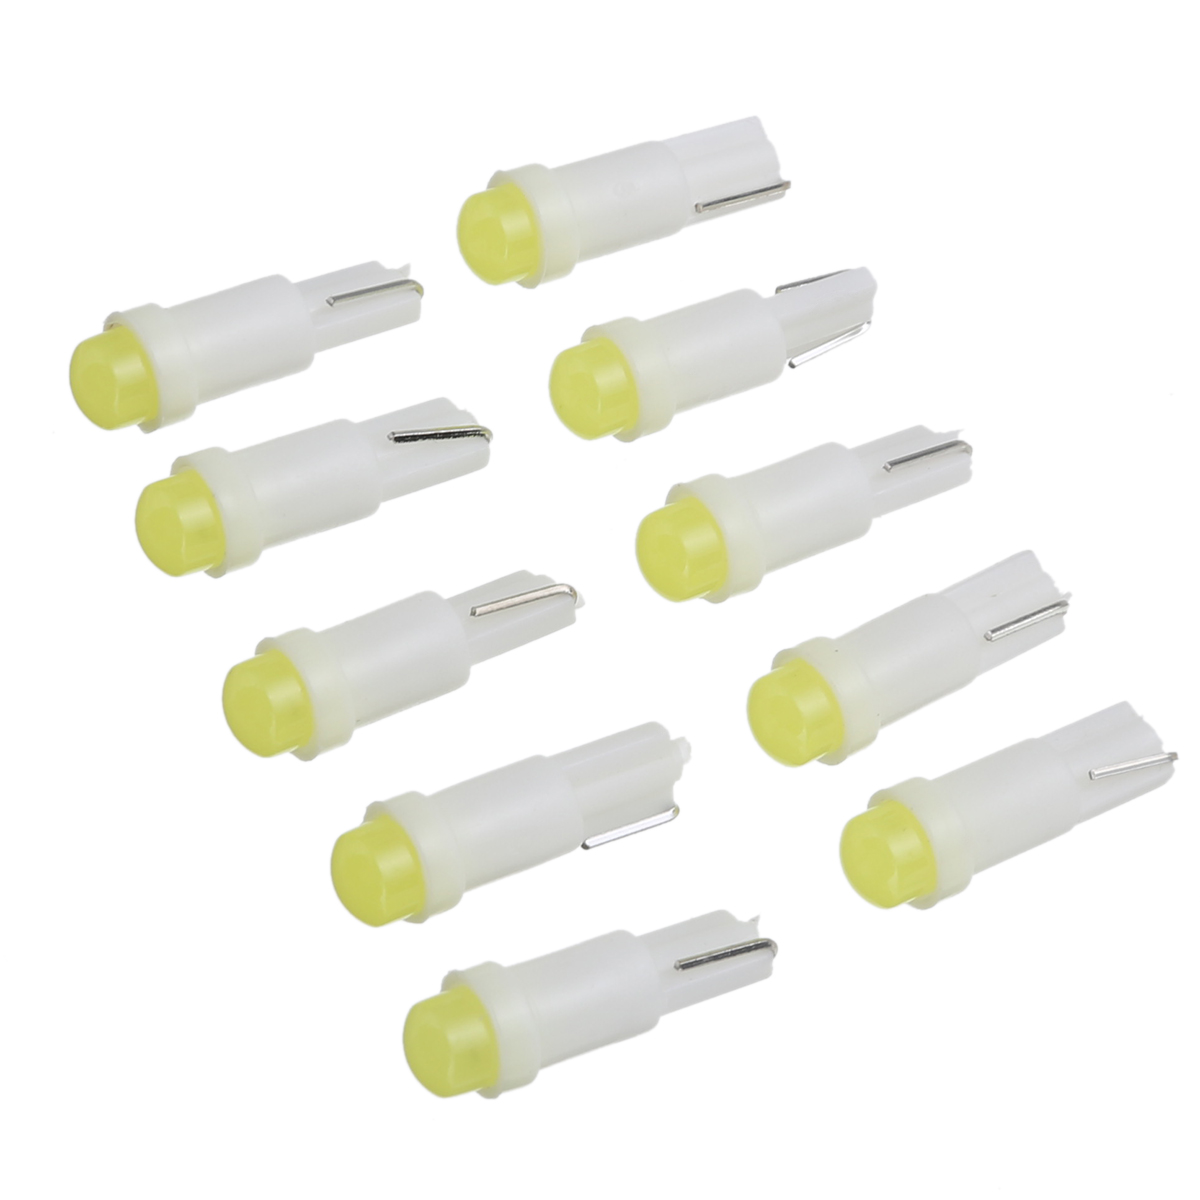 10pcs Car Interior Light T5 led 1 SMD led Dashboard Gauge Light T5 Instrument Wedge Light Car Light T5 Bulb